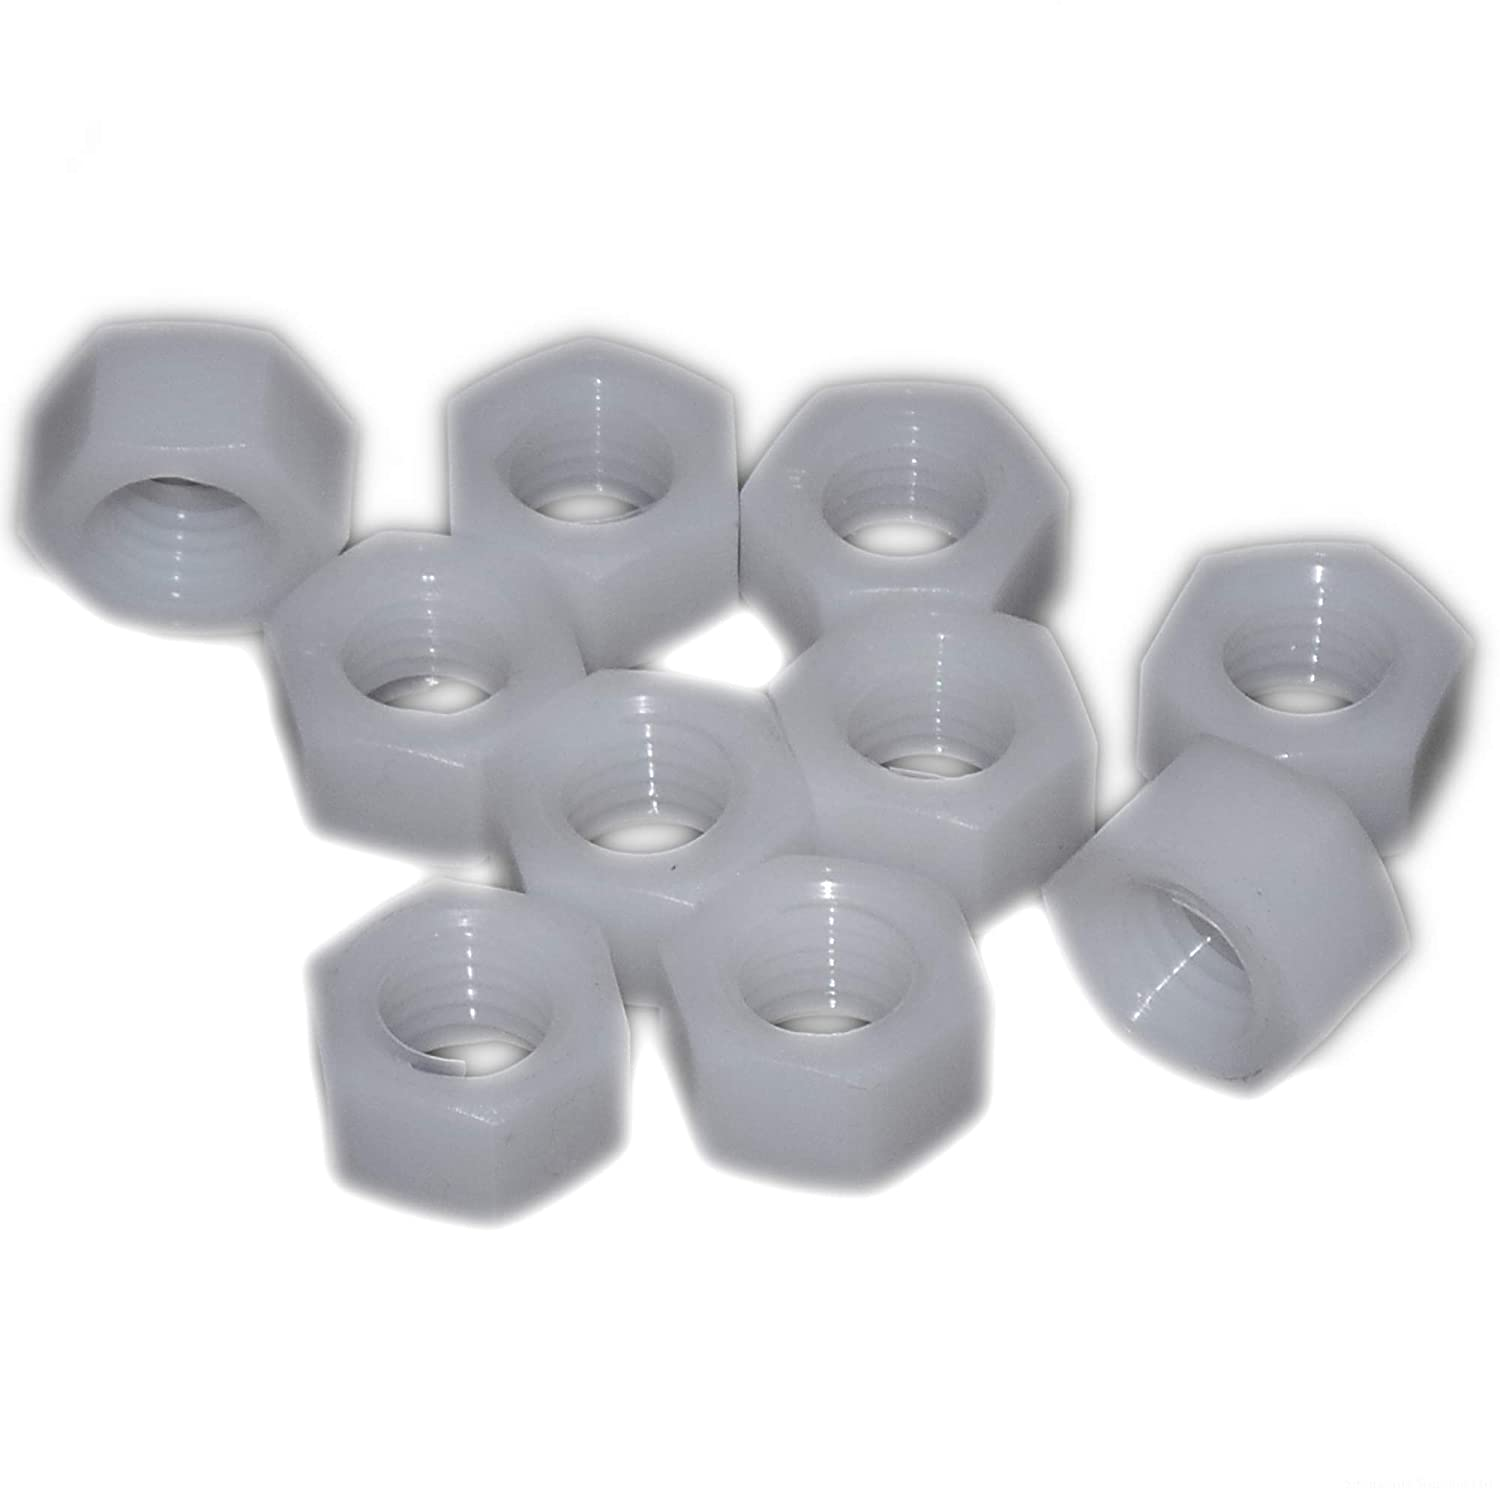 Natural Nylon Hex Nut Pack of 10 8mm M8